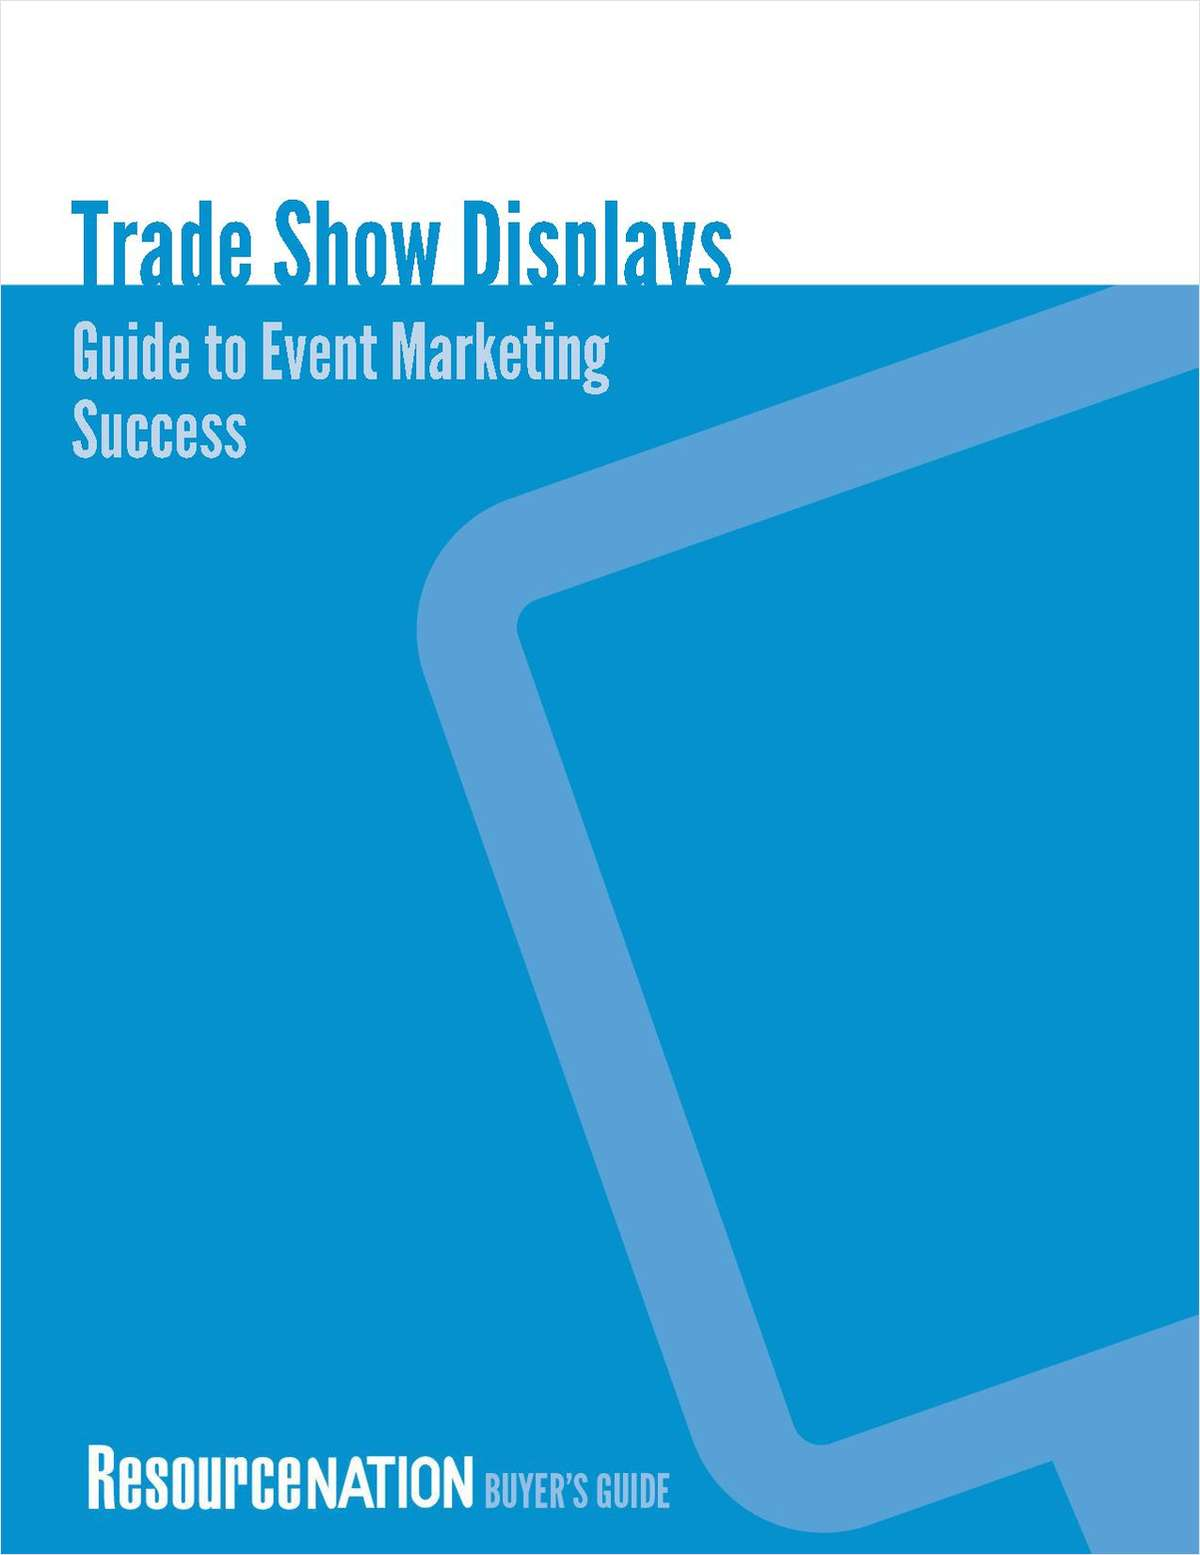 Guide to Successful Event Marketing